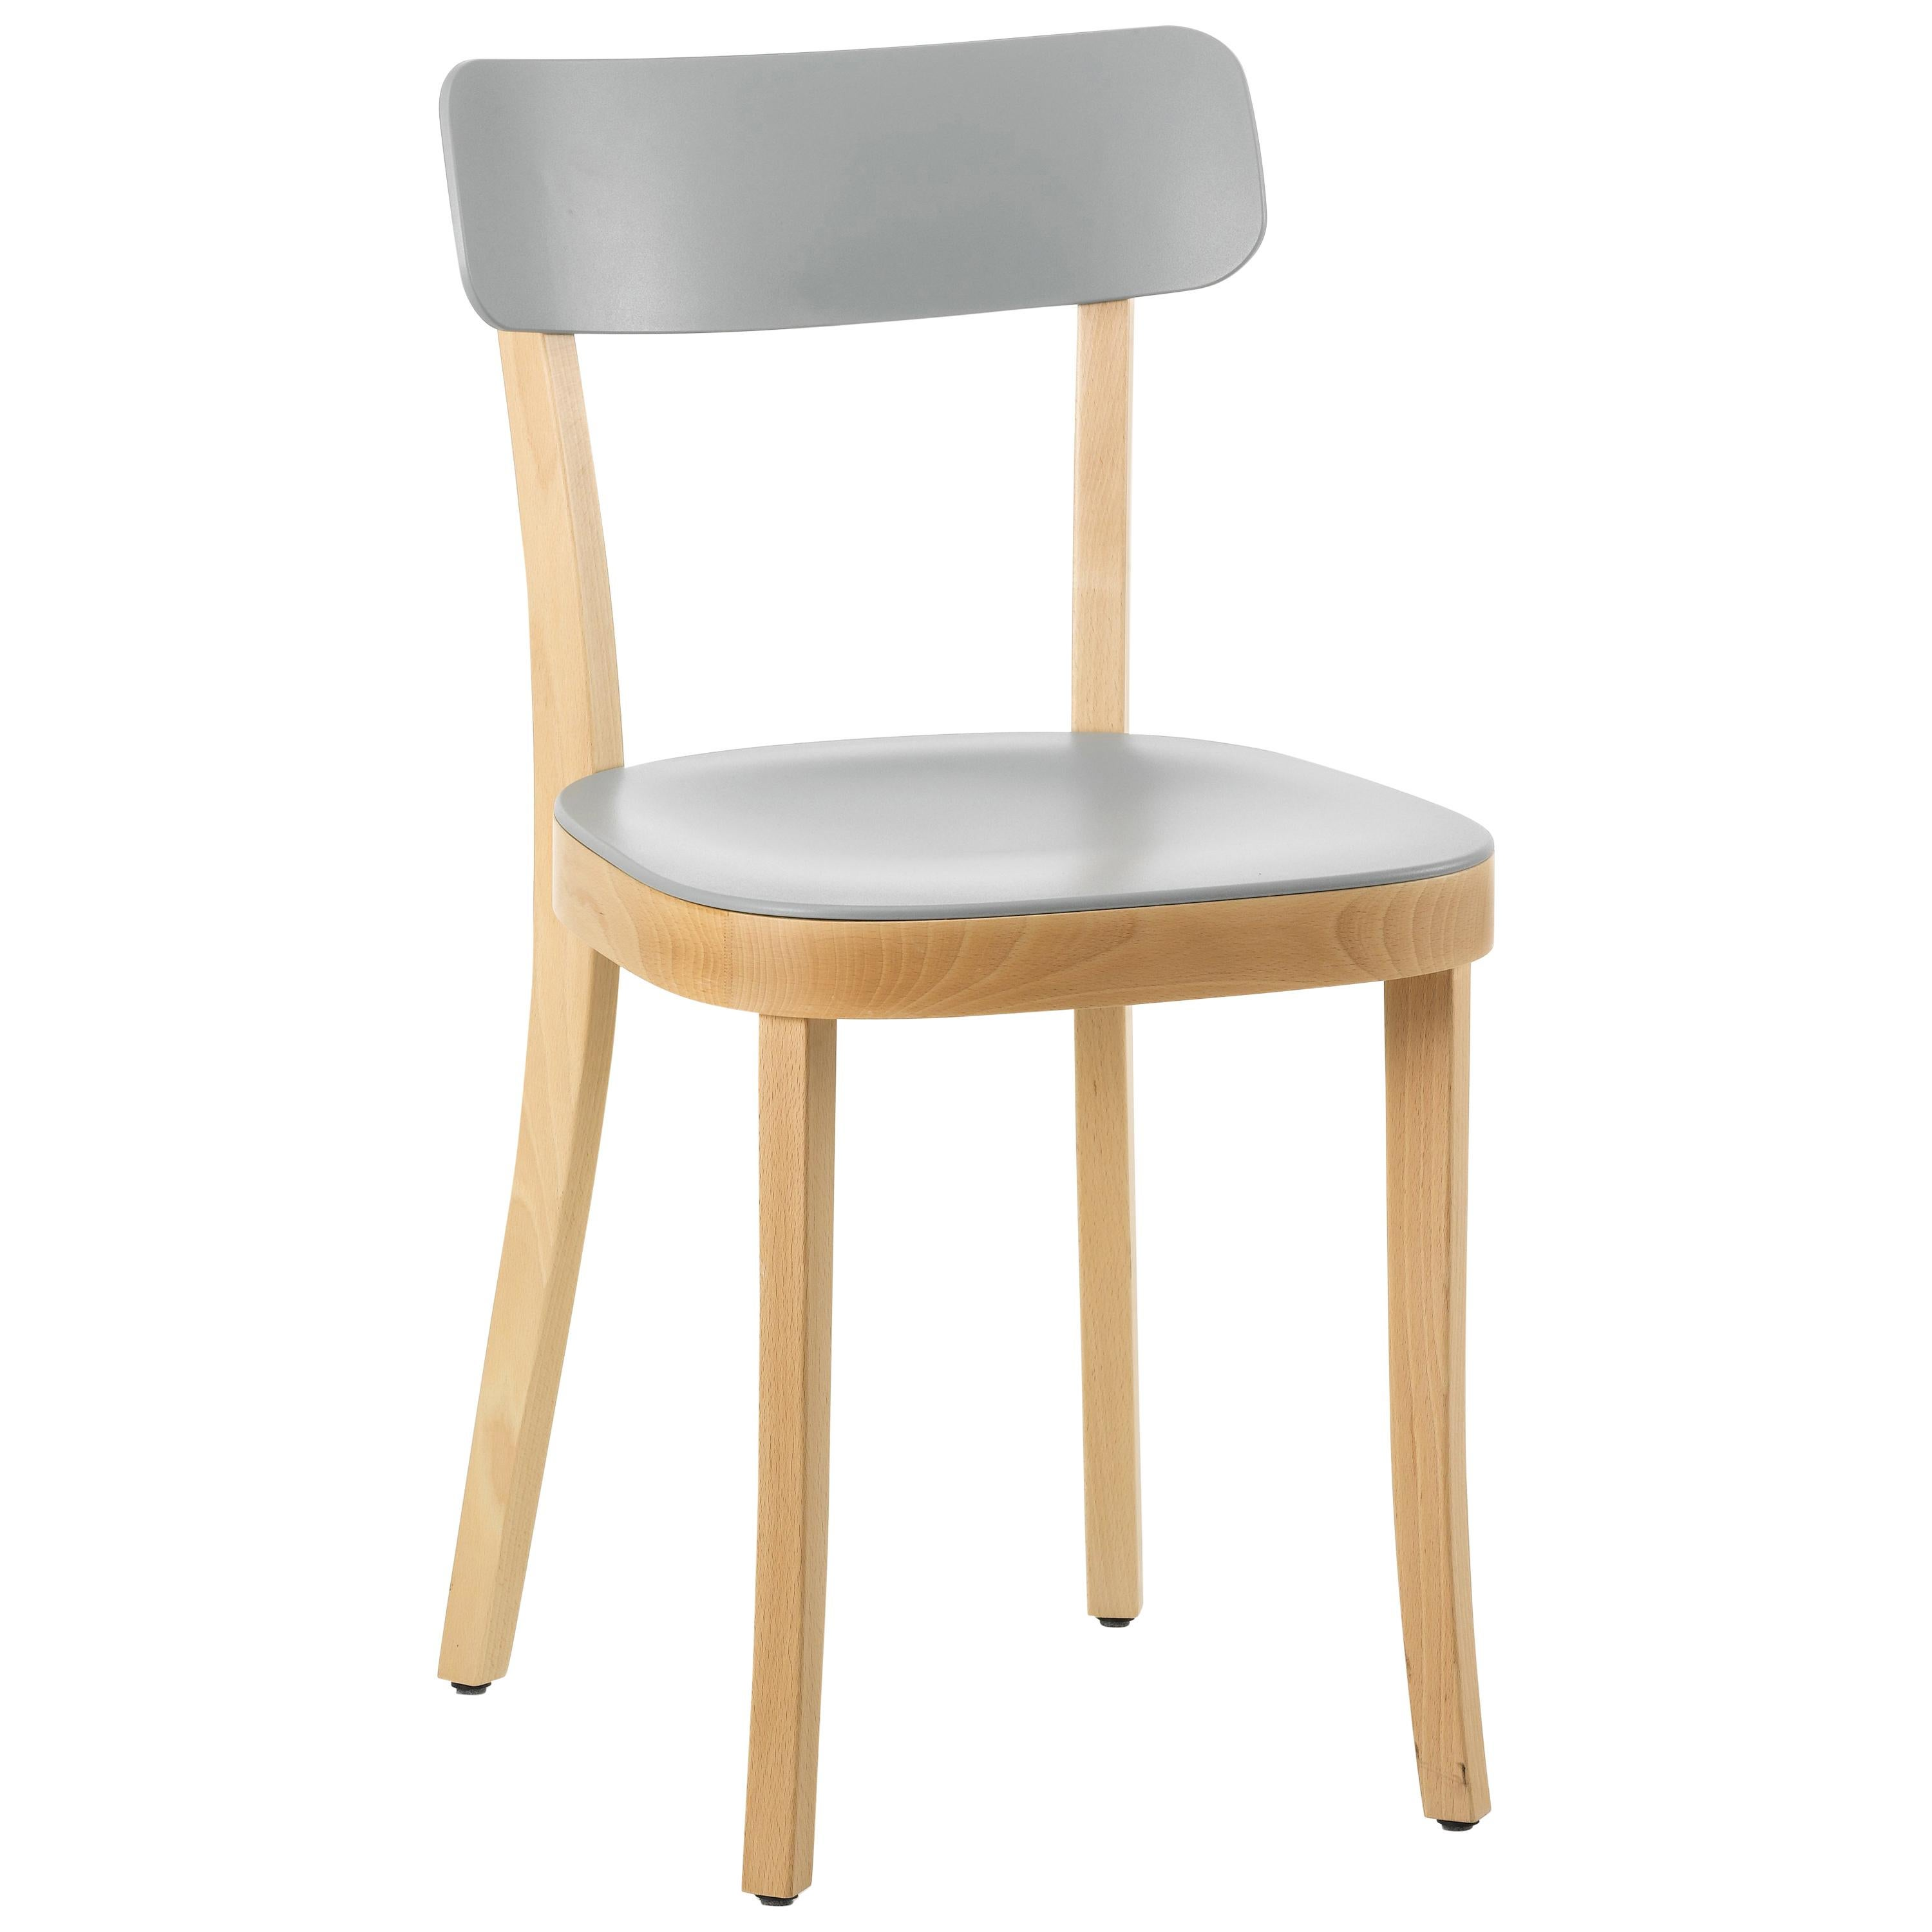 light grey chair tall outdoor table and chairs vitra basel in with natural beech base by jasper morrison for sale